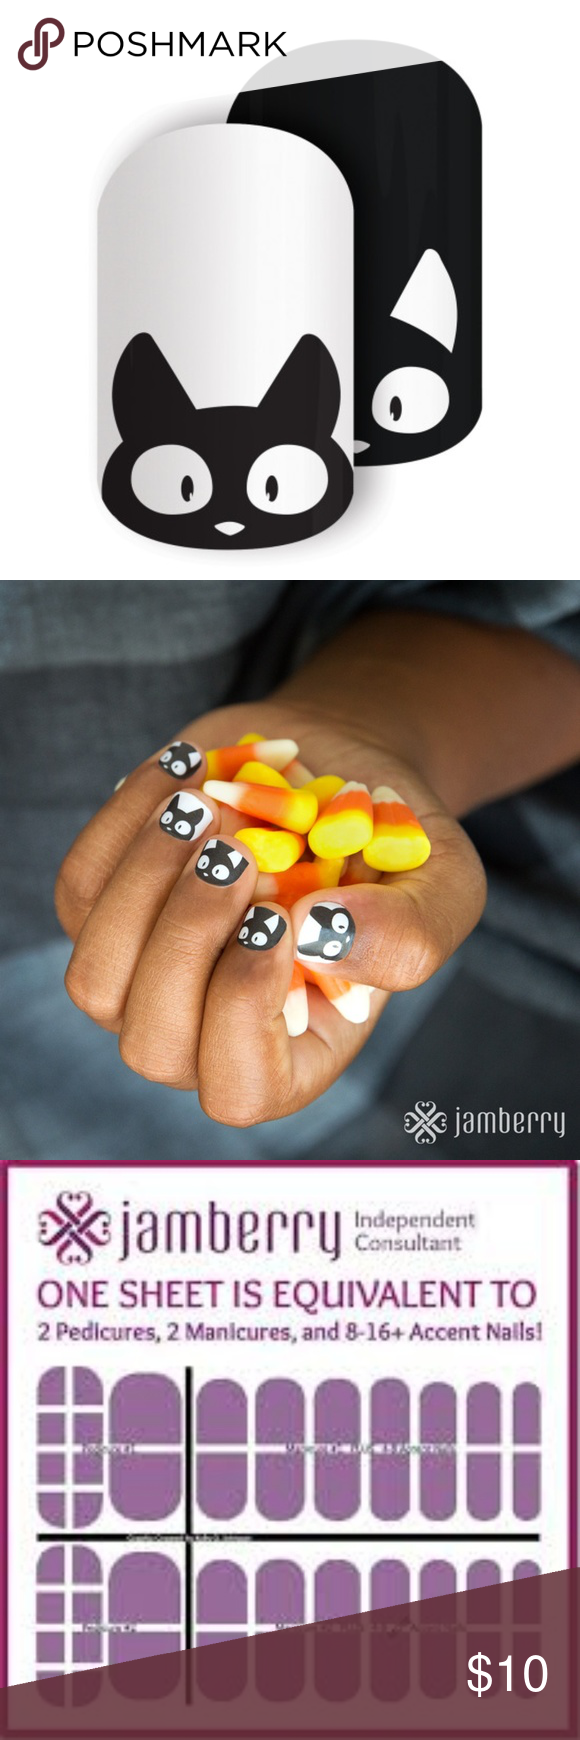 HALF SHEET Jamberry Double Trouble Cats Mixed Mani Mani